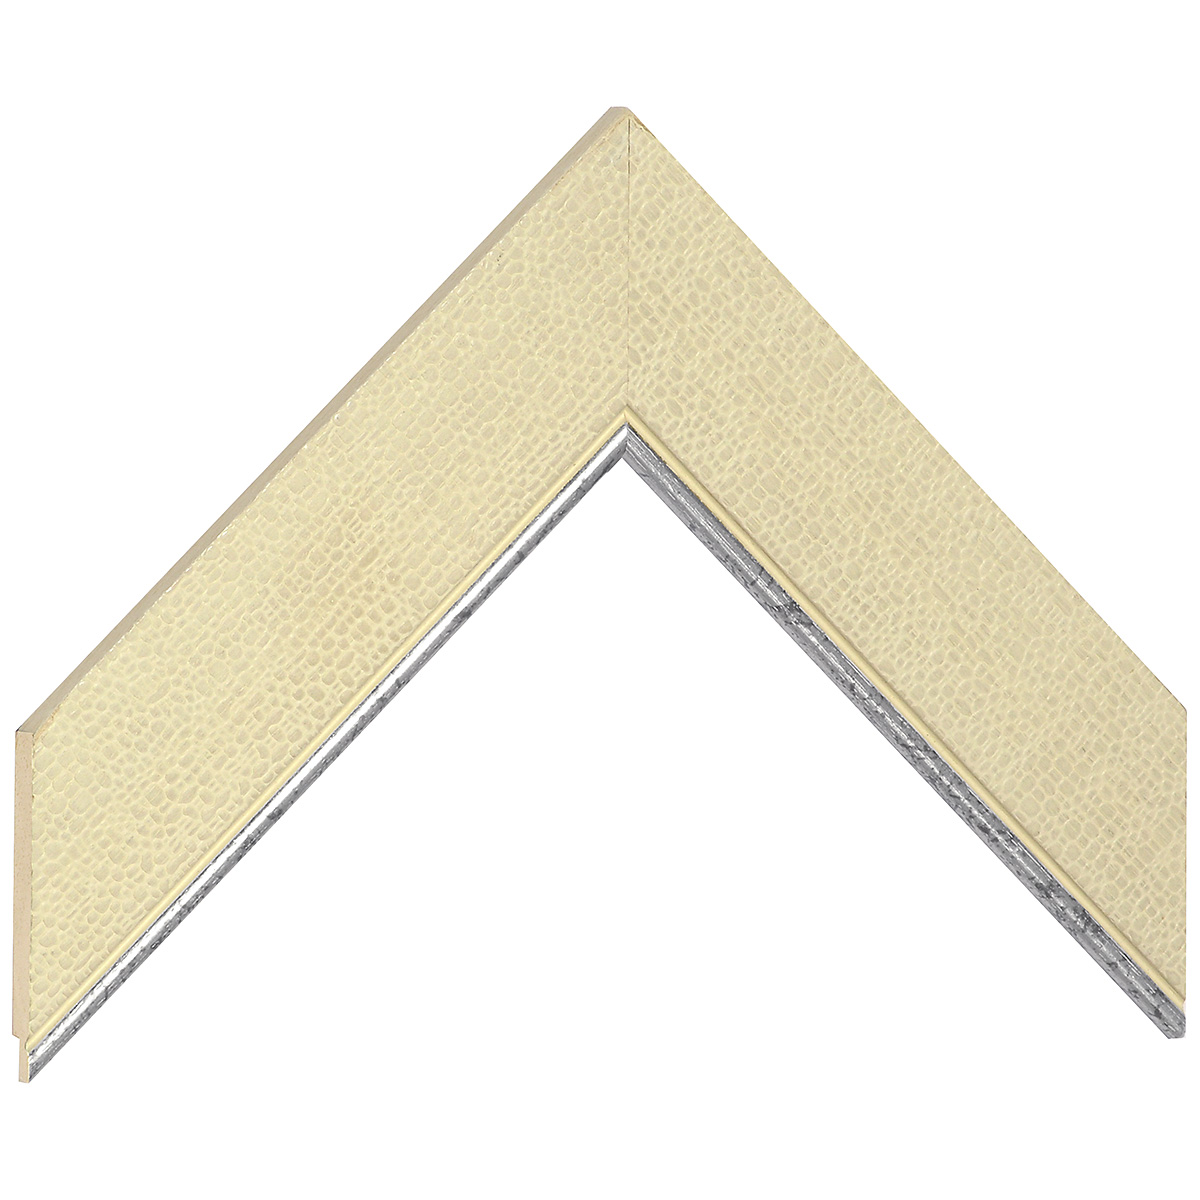 Liner ayous 42mm - flat, fabric effect, gold edge